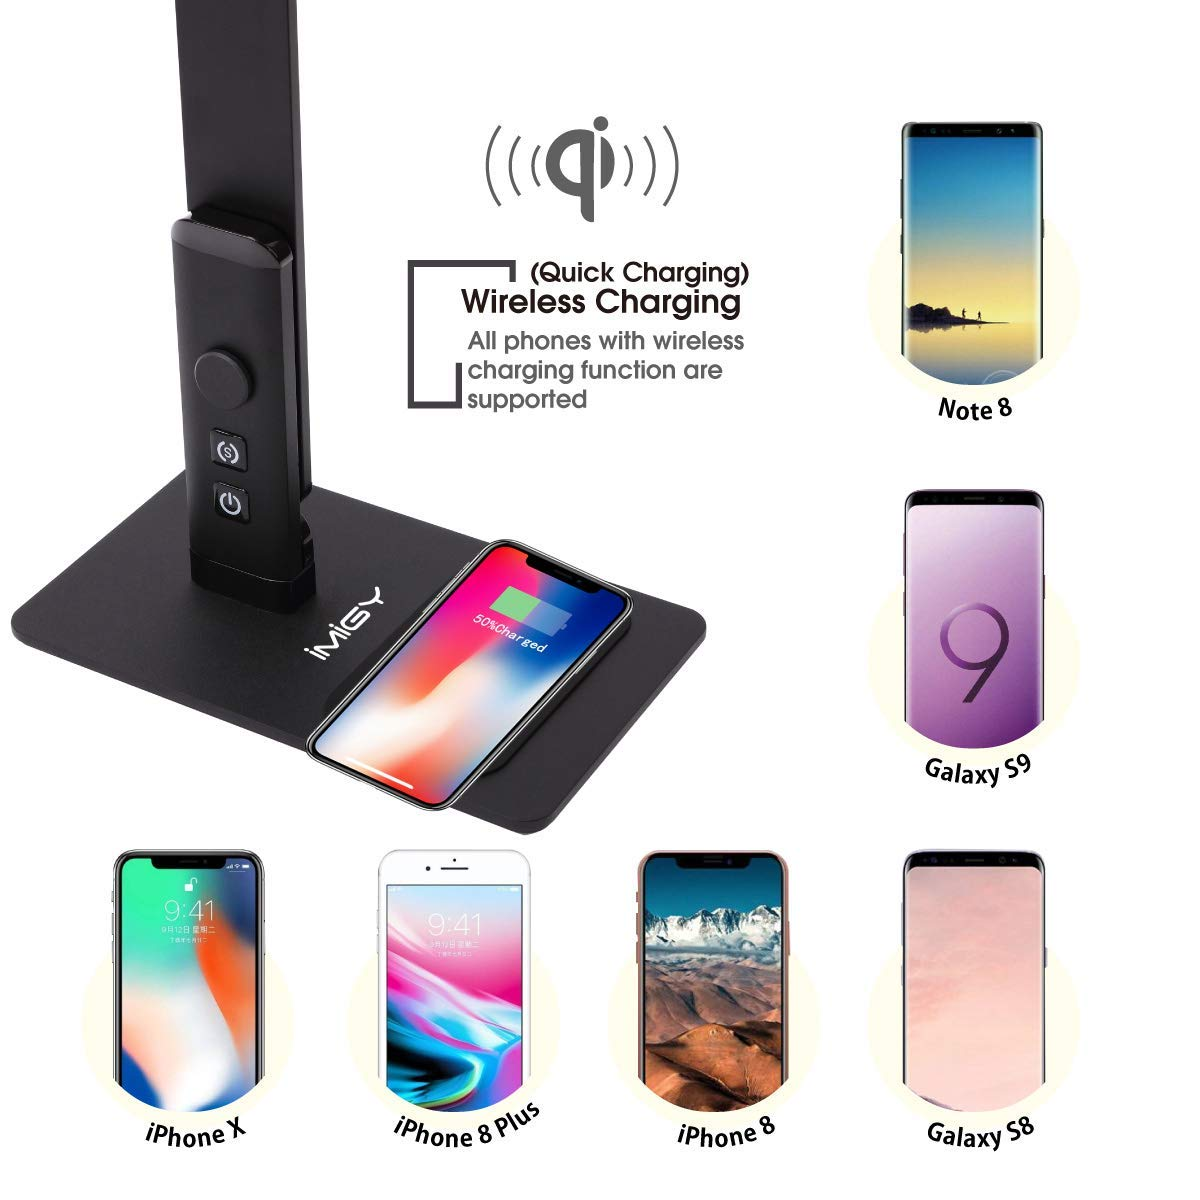 imiGY 12W Dimmable LED Desk Lamp with USB//Wireless Qi Charging Touch Control with 3 Brightness 3 Color Modes for iPhone 8//8Plus//X//Xs//Xs Max and Galaxy S8//S9 Dimmable Office Lamp